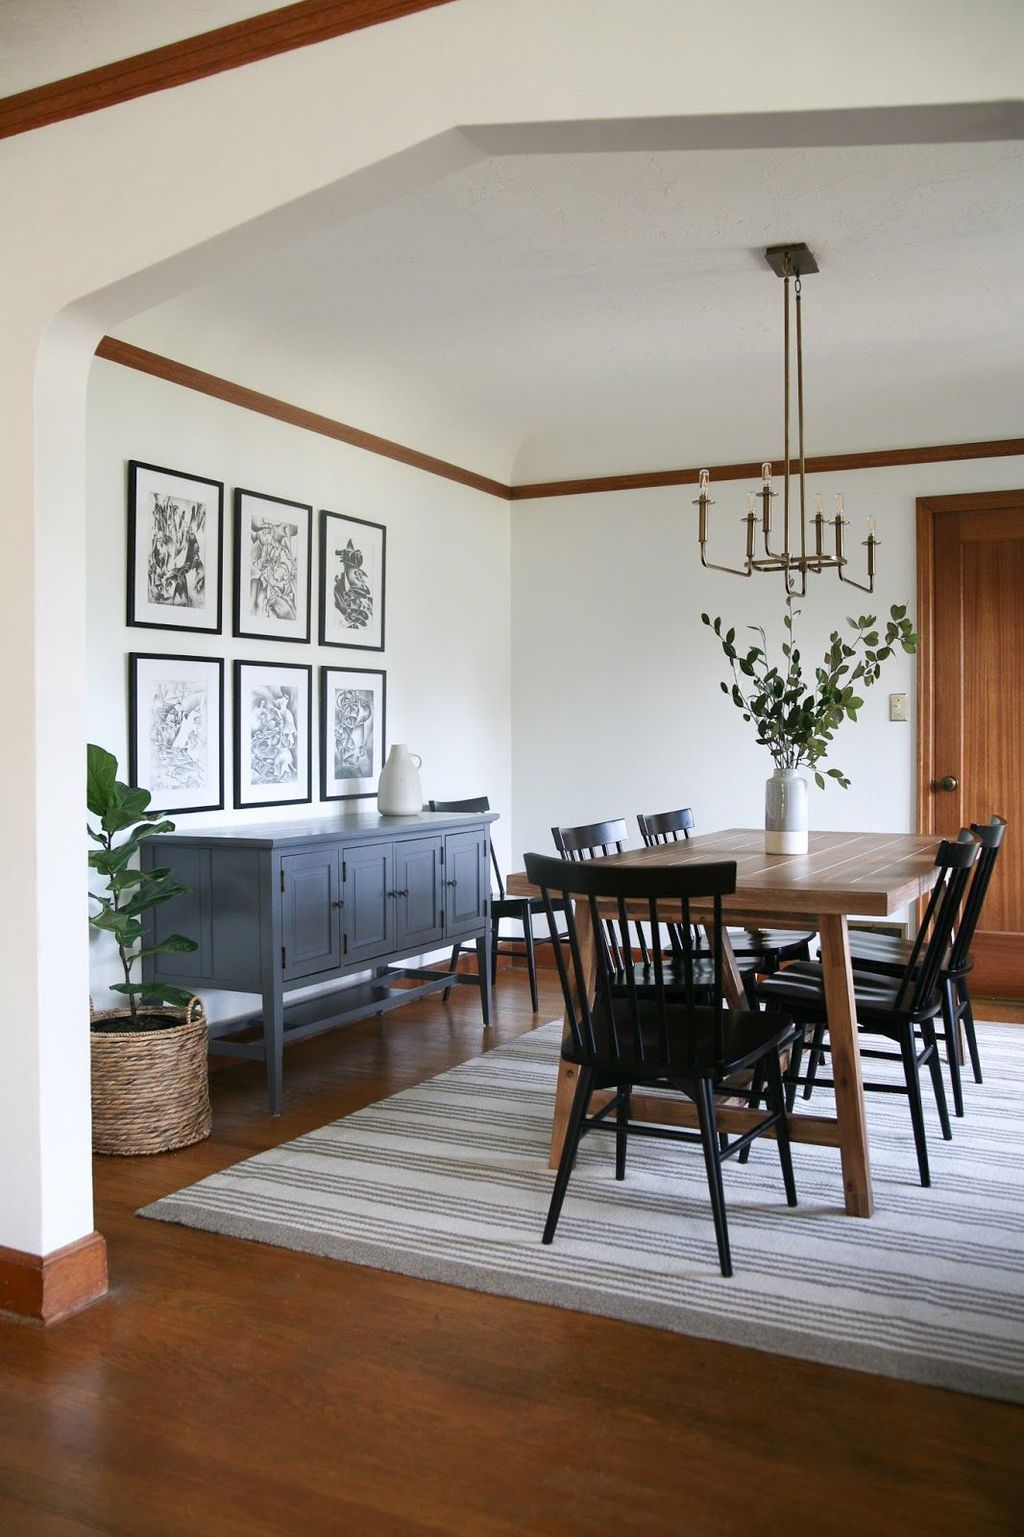 Admirable Dining Room Design Ideas 30